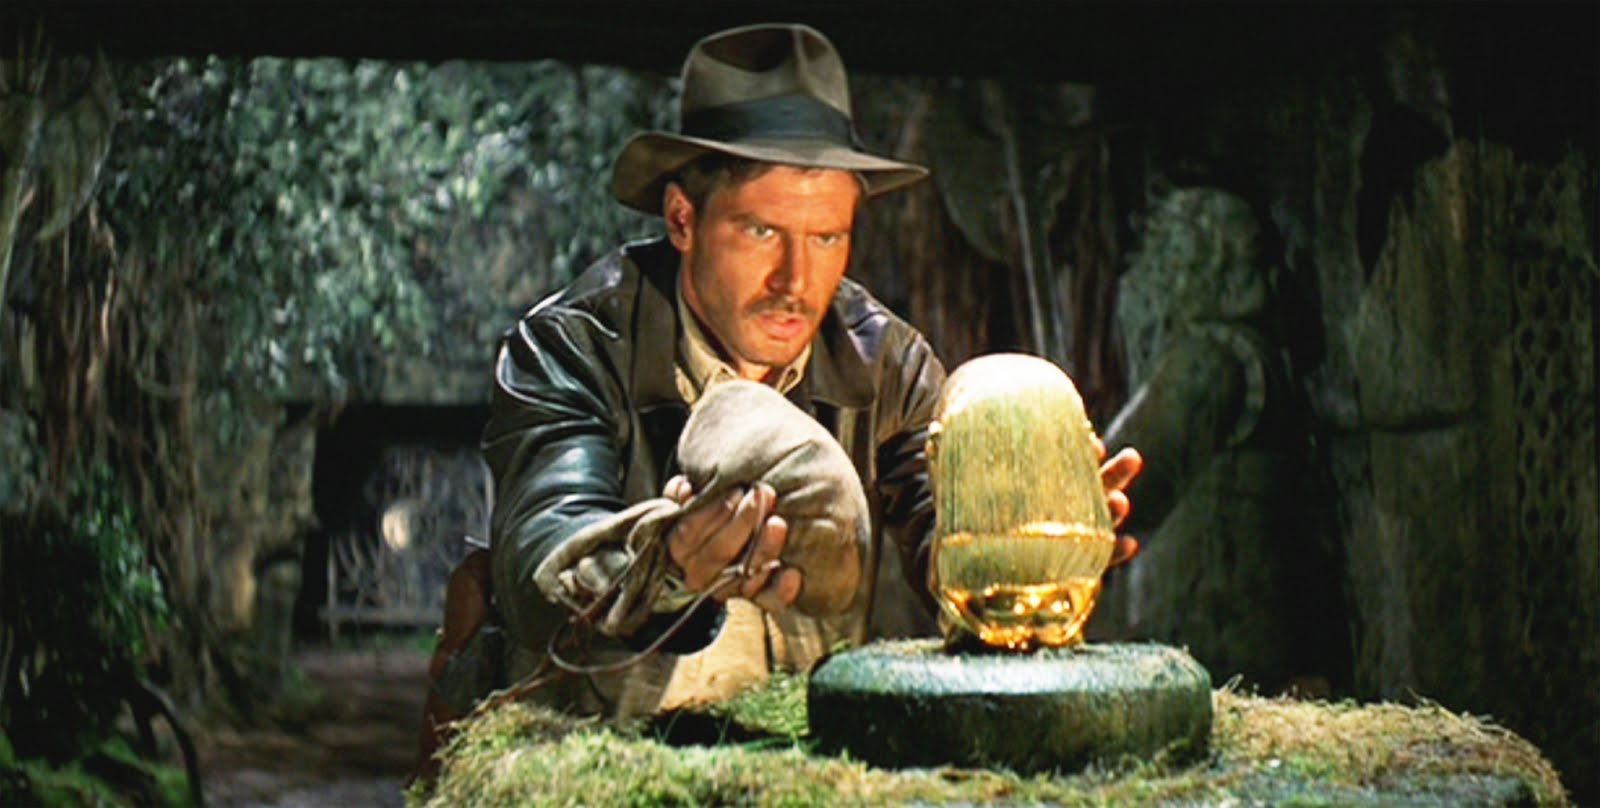 Indiana Jones (Harrison Ford) retrieves the gold idol in Raiders of the Lost Ark (1981)